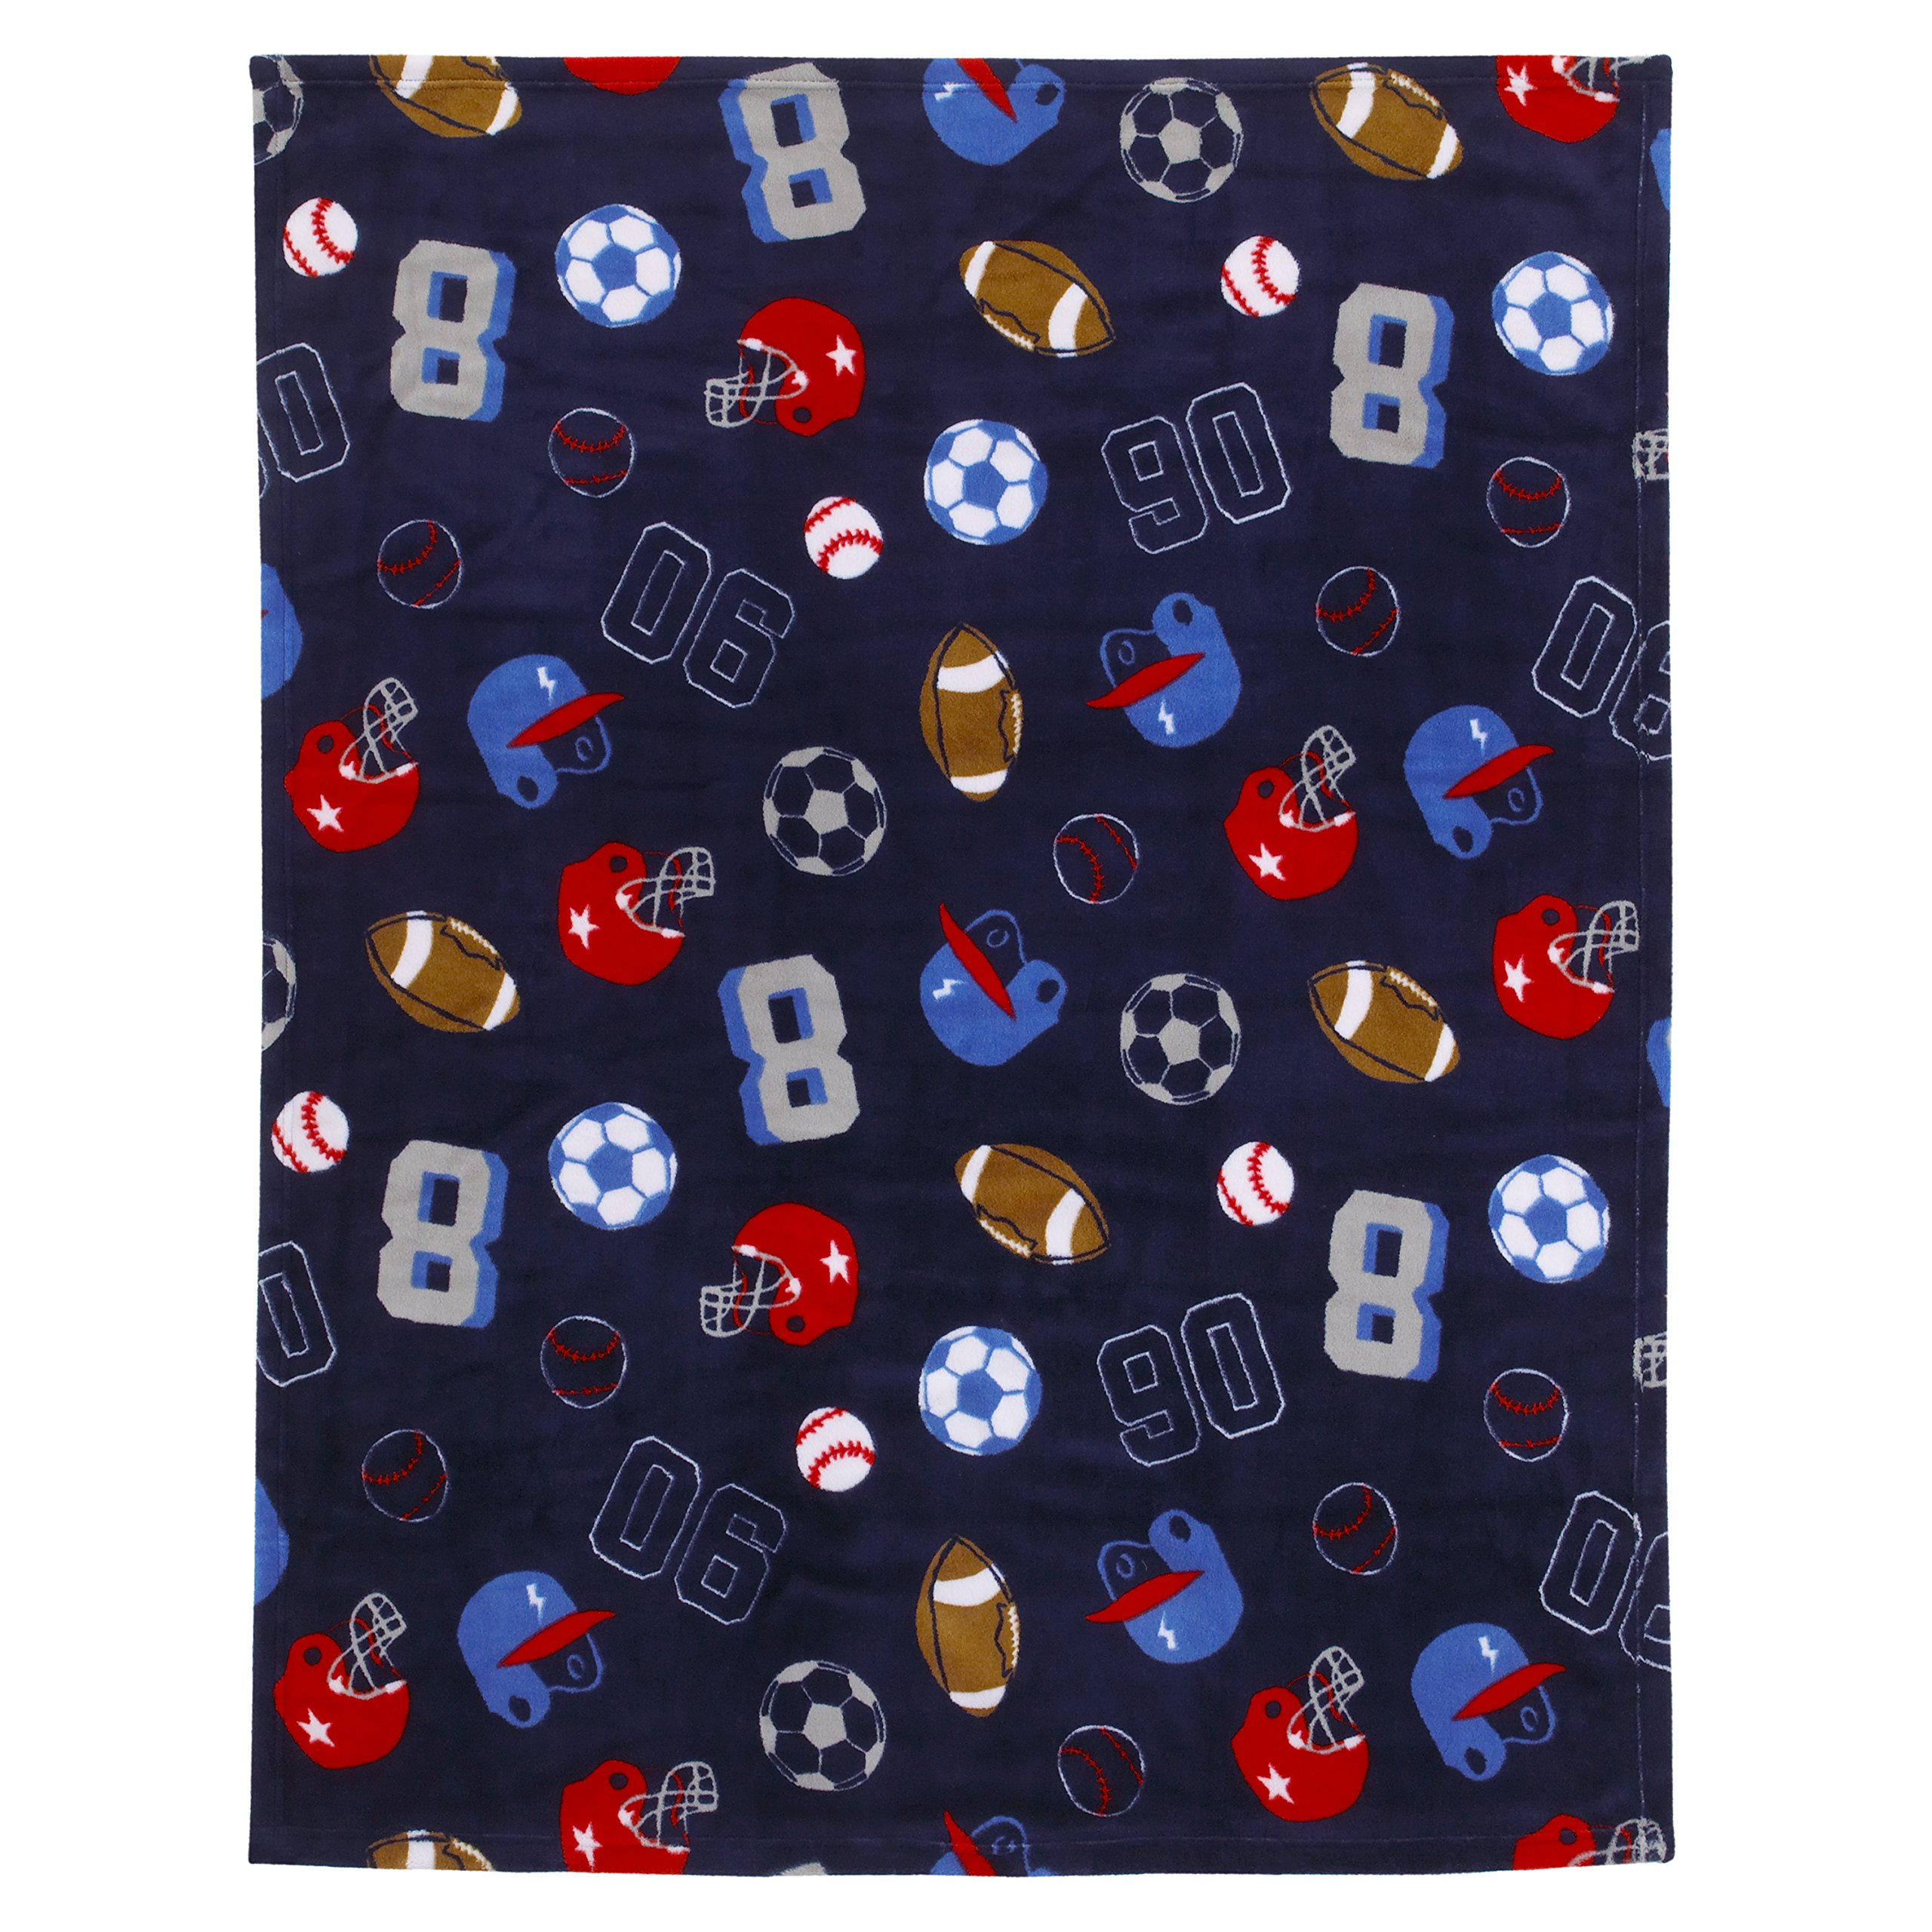 Carter's All Star Sports Super Soft Coral Fleece Toddler Blanket, Navy, Red, White, Gray